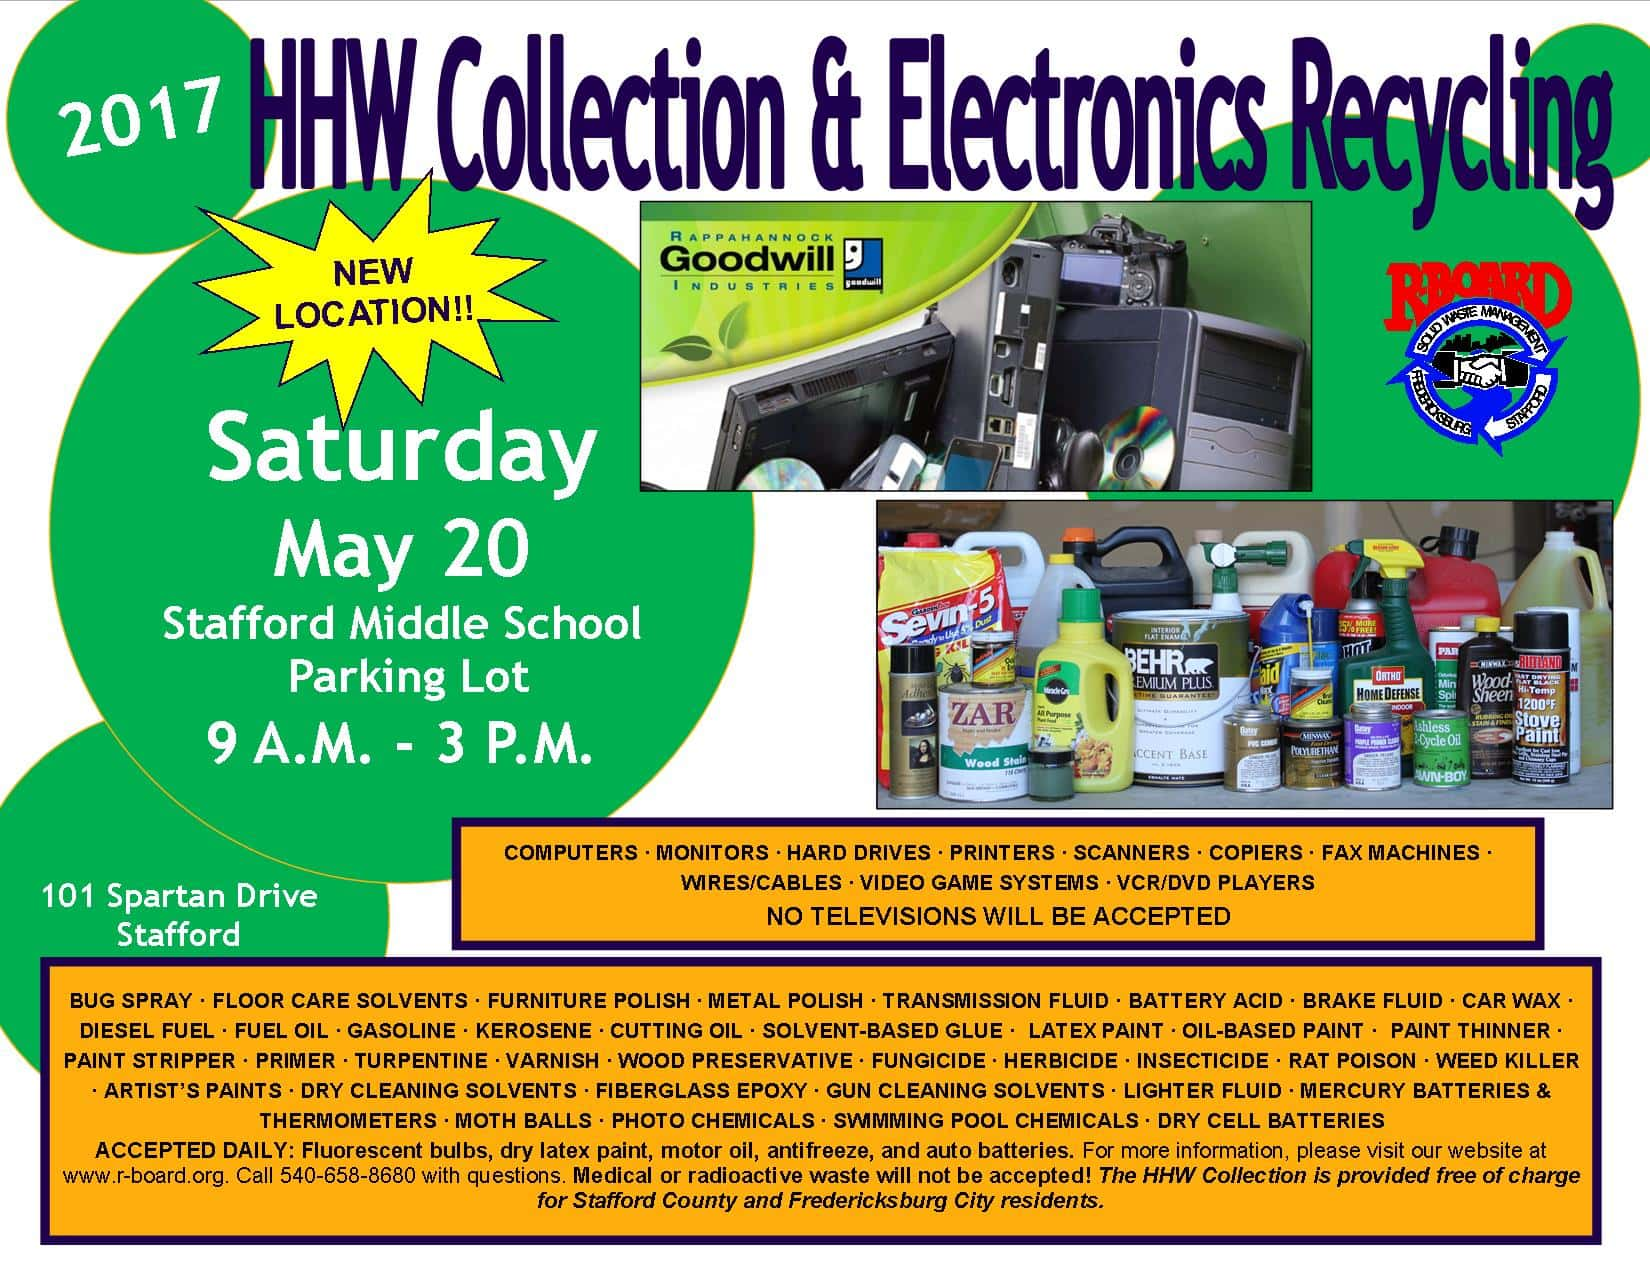 hhw collection electronics recycling day b101 5 all of today s